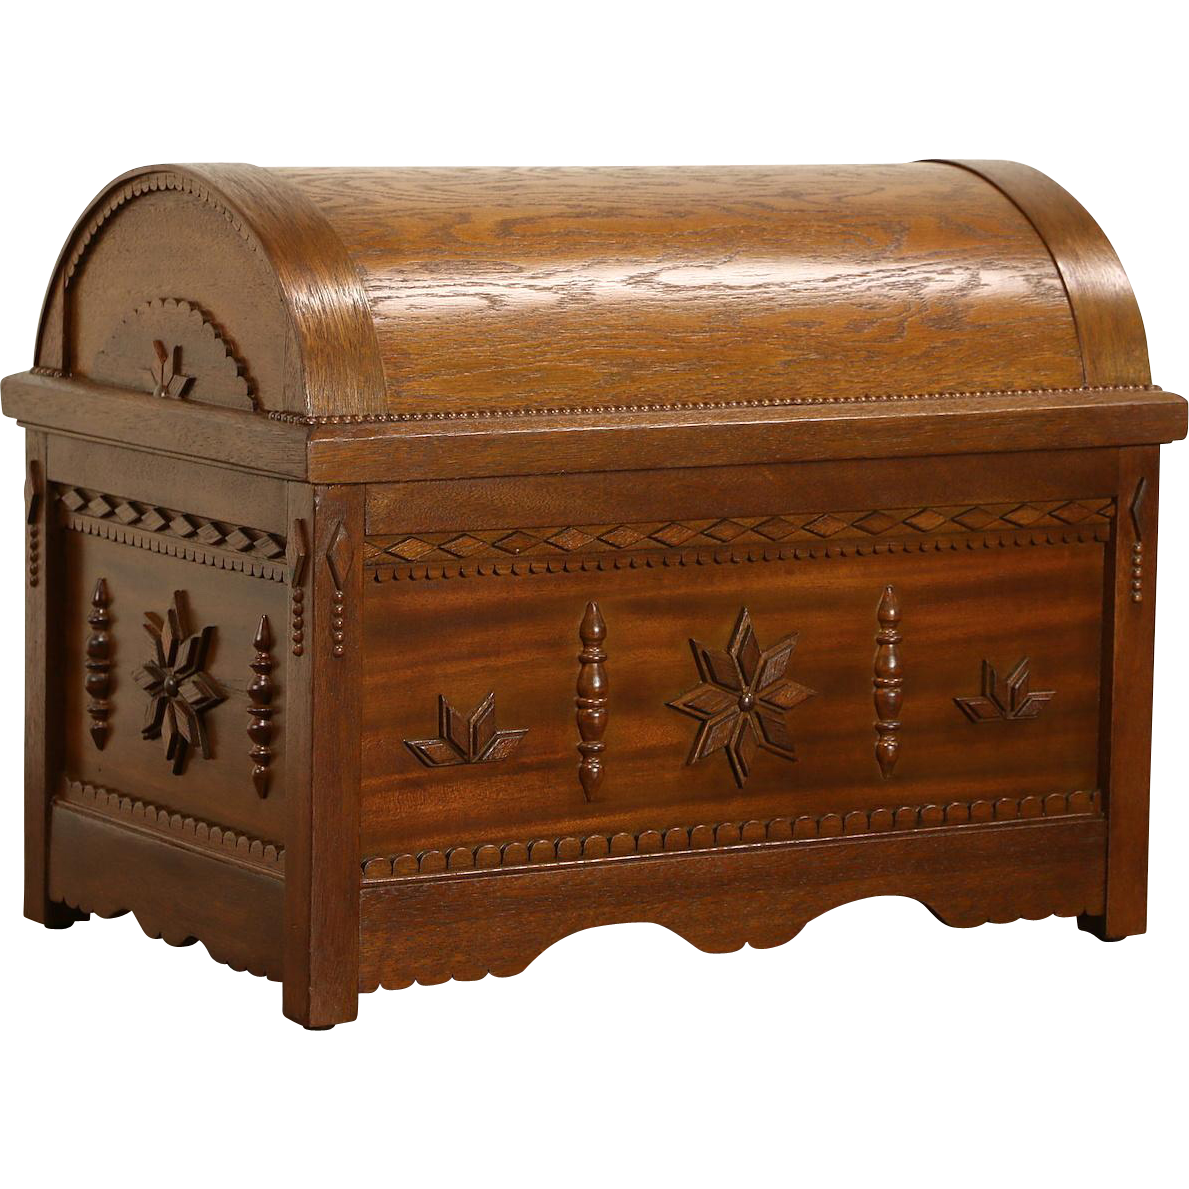 Scandinavian Folk Art Vintage Dome Top Chest or Small Trunk